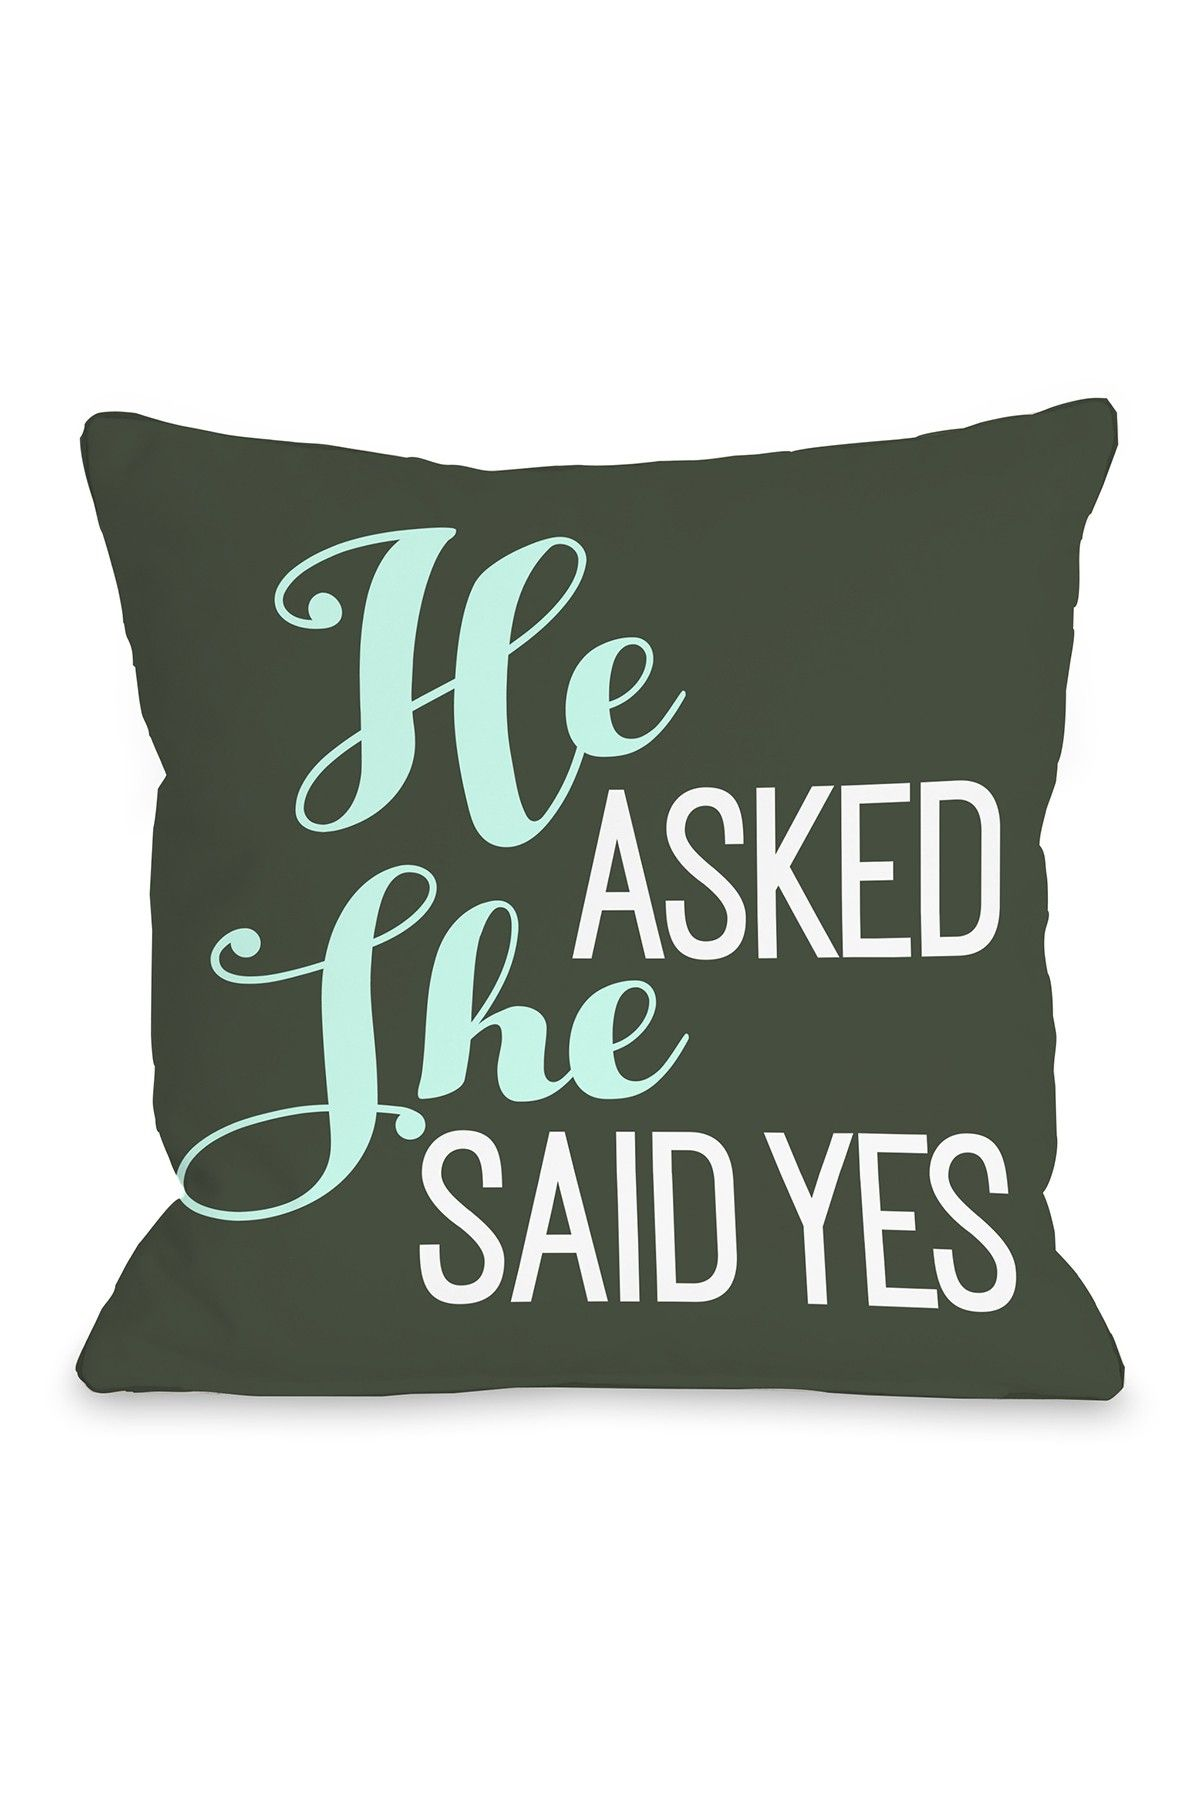 One bella casa he asked she said yes green pillow by obc home